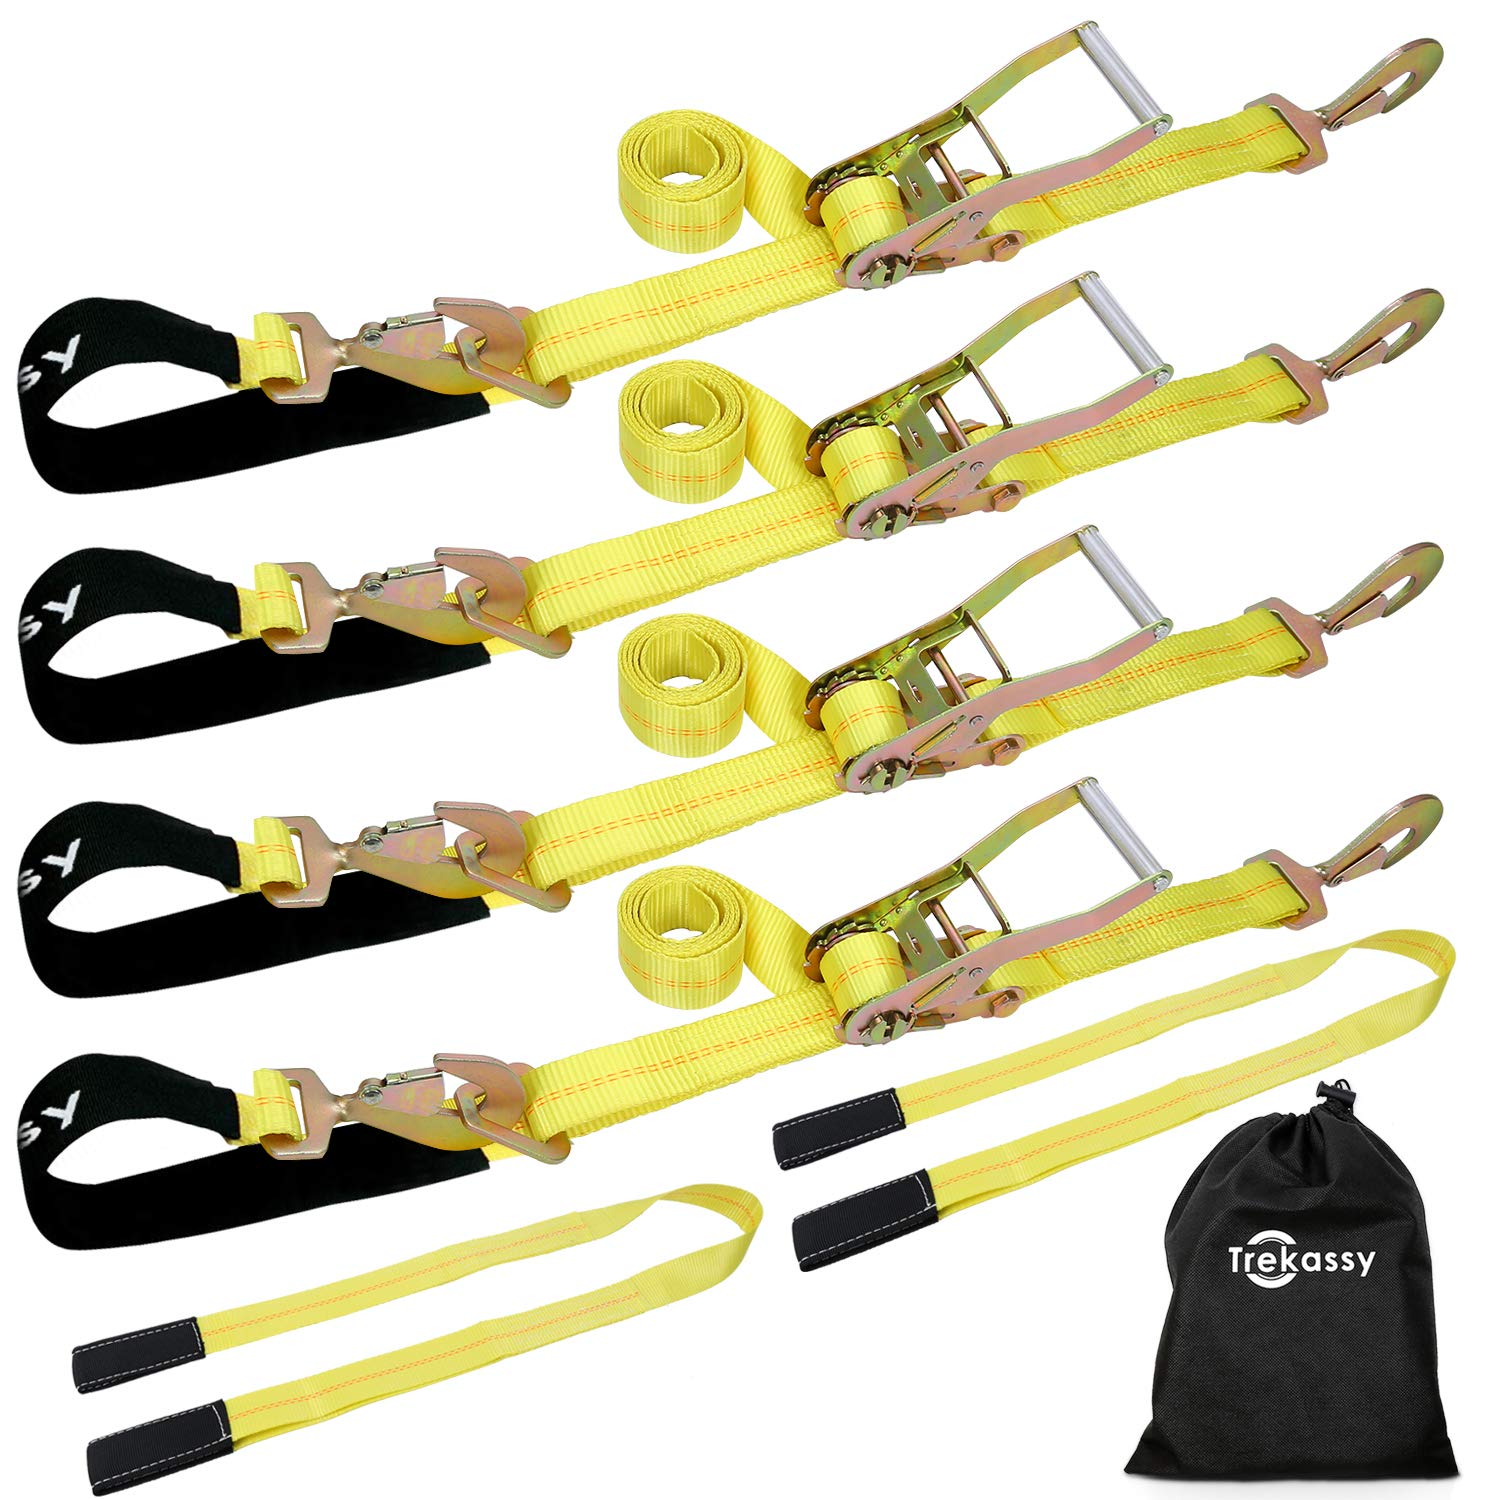 Trekassy 4 Pack Car Axle Straps Ratchet Tie Downs System with Snap Hooks, 2 Free Lift Sling Straps, 3,333lbs Safe Working Load by Trekassy